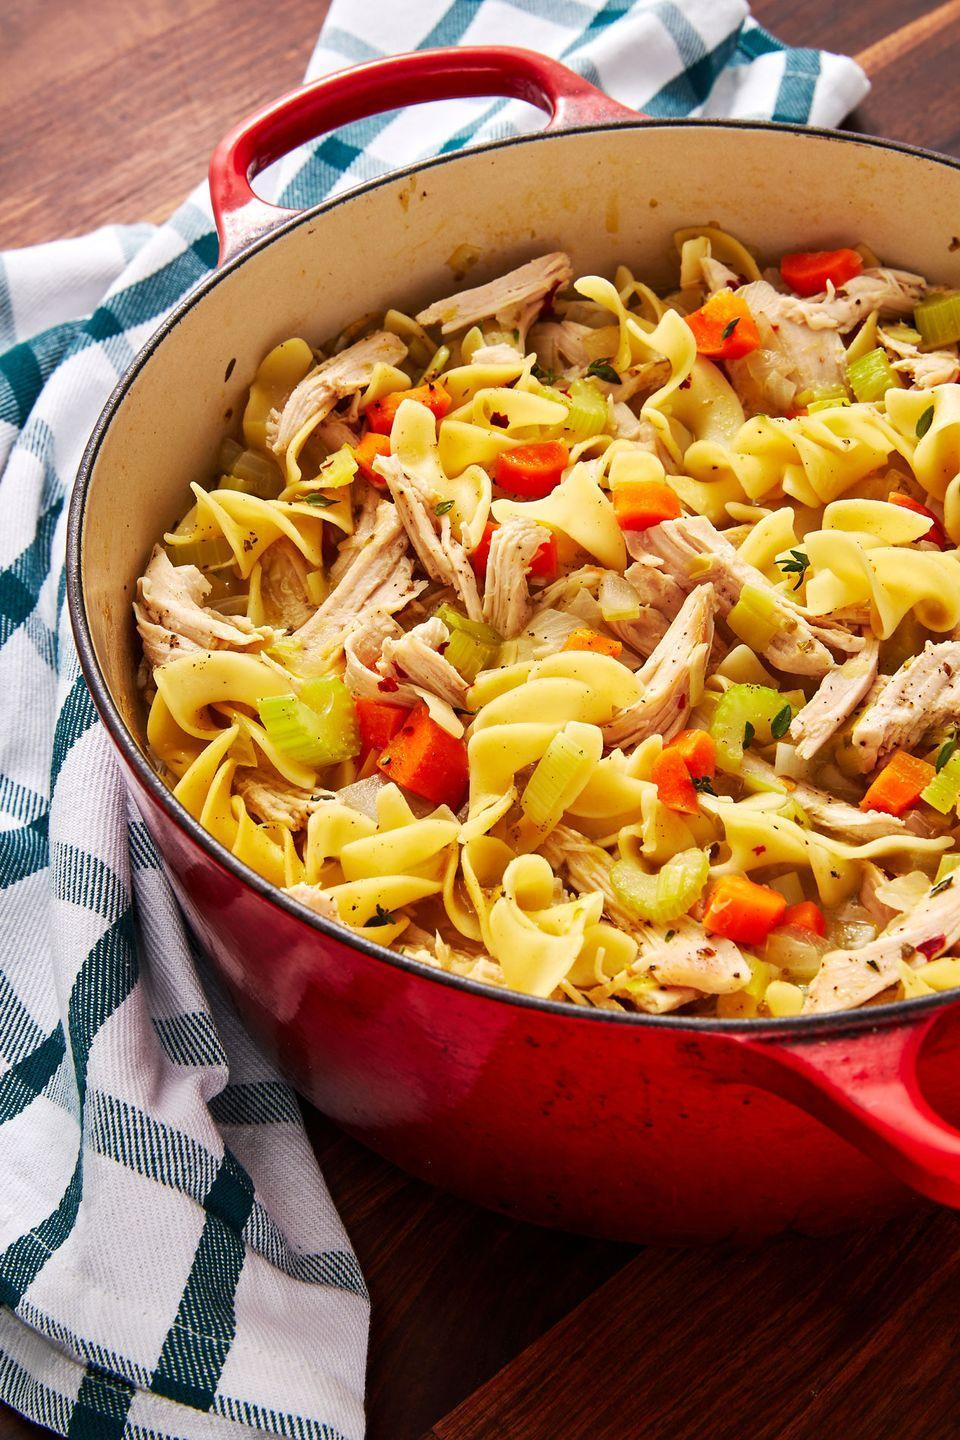 """<p>A warm (and easy!) way to use up leftover turkey.</p><p>Get the recipe from <a href=""""https://www.delish.com/cooking/recipe-ideas/a29089192/turkey-noodle-soup-recipe/"""" rel=""""nofollow noopener"""" target=""""_blank"""" data-ylk=""""slk:Delish"""" class=""""link rapid-noclick-resp"""">Delish</a>.</p>"""